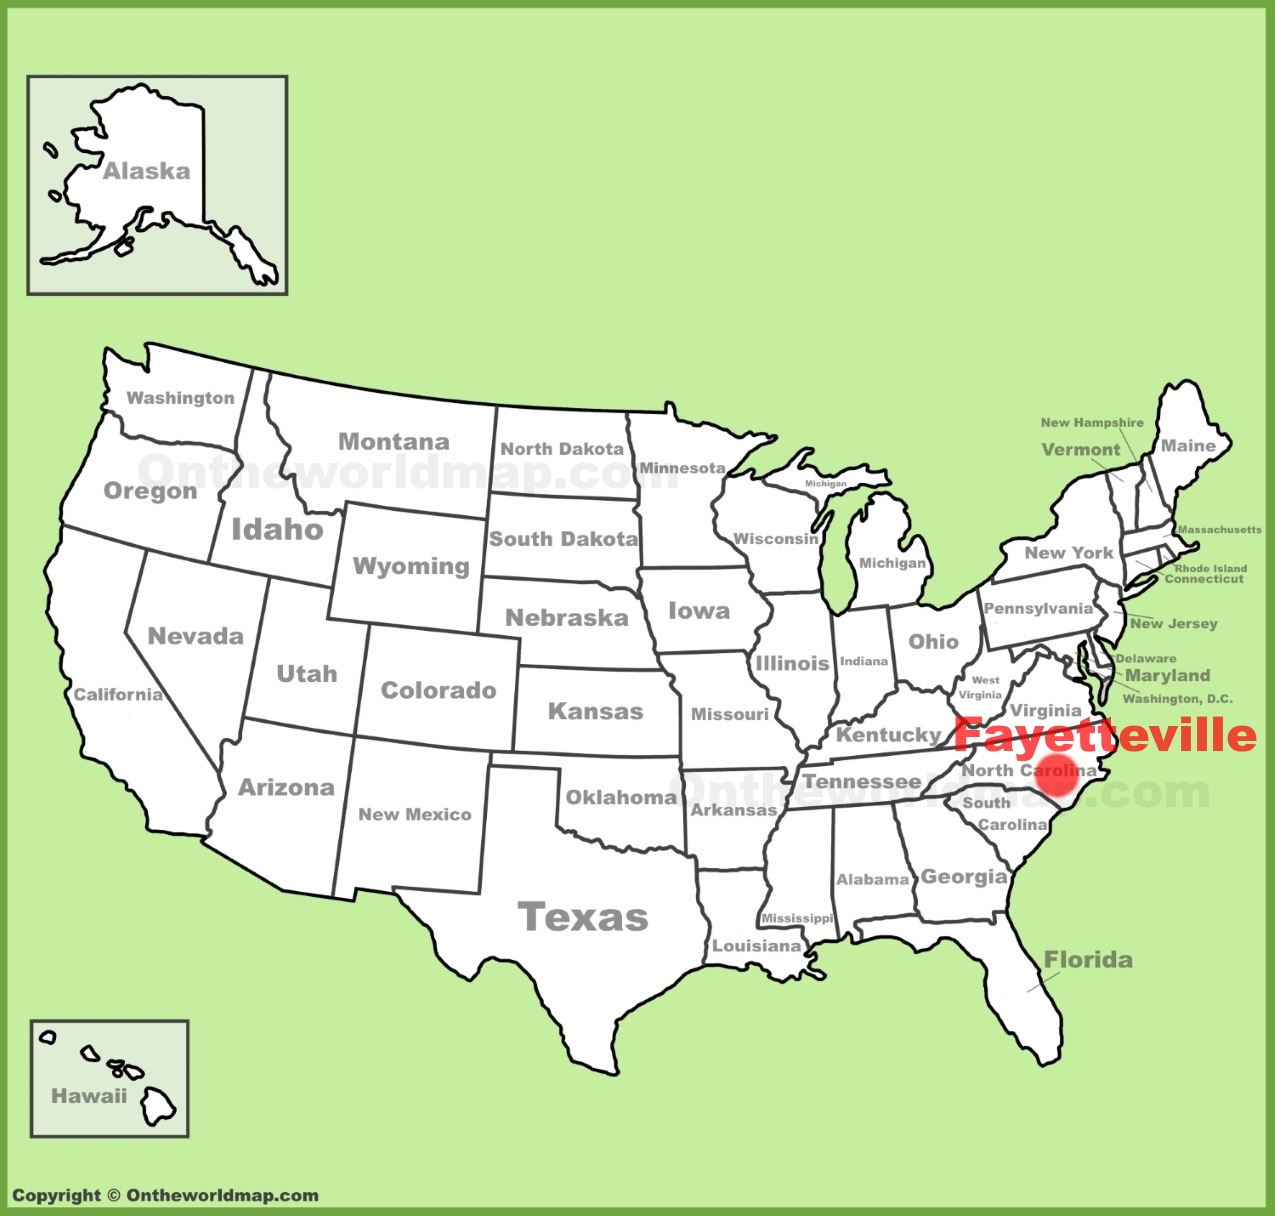 Fayetteville location on the U.S. Map on map of o'fallon, map of otto, map of cornelius, map of hazlehurst, map of west columbia, map of the hills, map of roan mtn, map of crittenden county, map of spring city, map of alexander county, map of hookerton, map of horseheads, map of stone county, map of lawrenceburg, map of girard, map of china grove, map of oak hill, map of pauls valley, map of graysville, map of roane county,